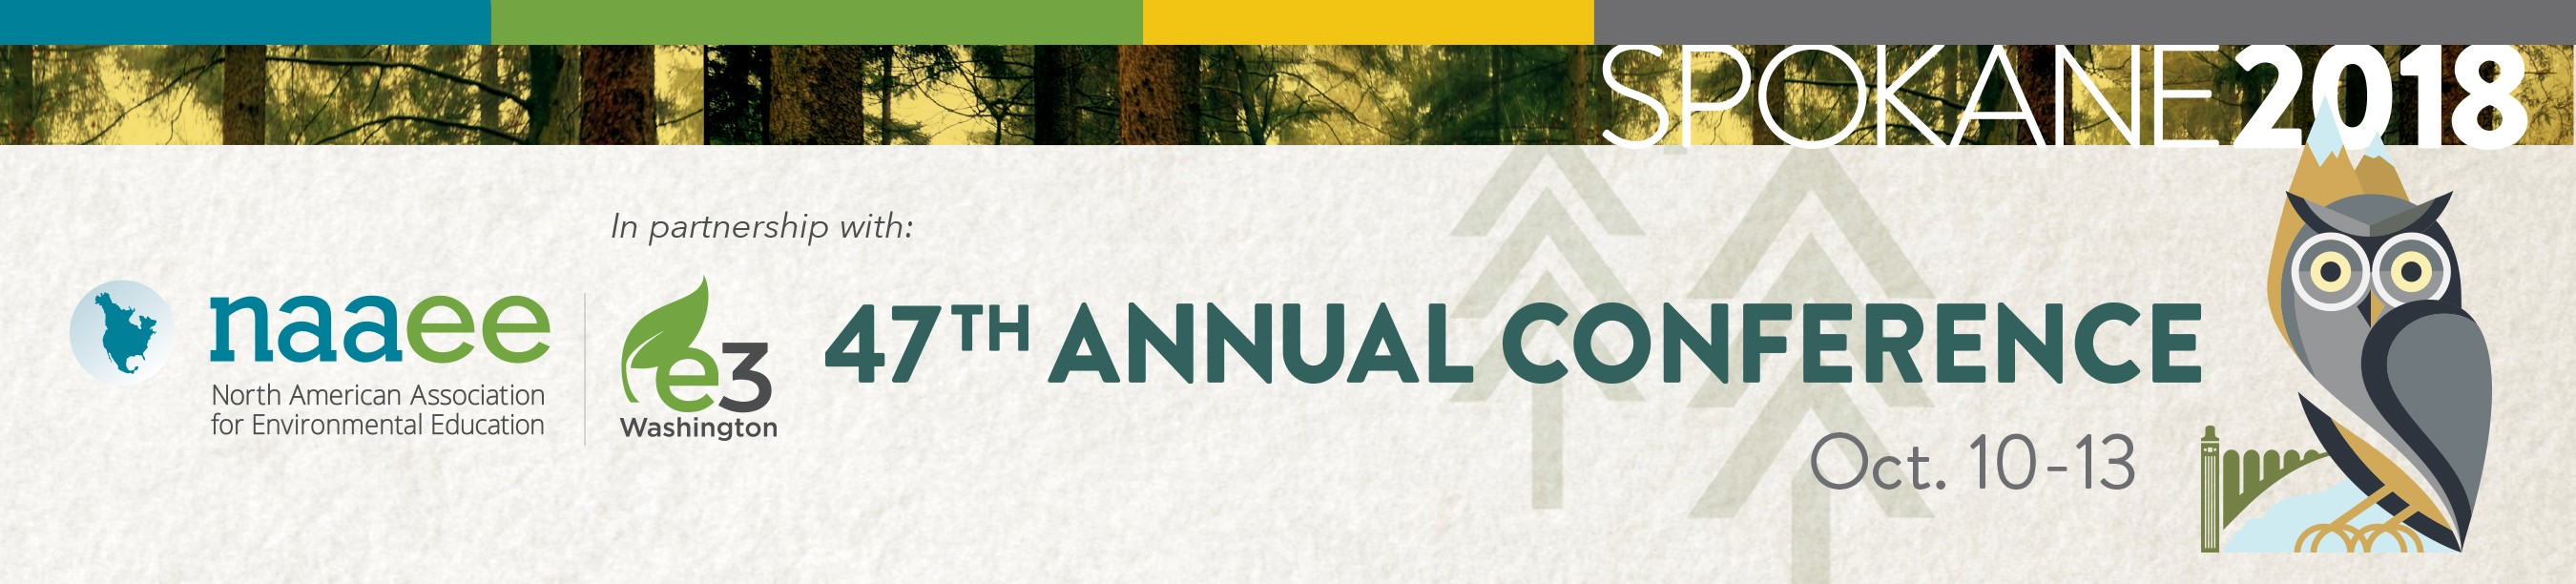 2018 NAAEE Annual Conference